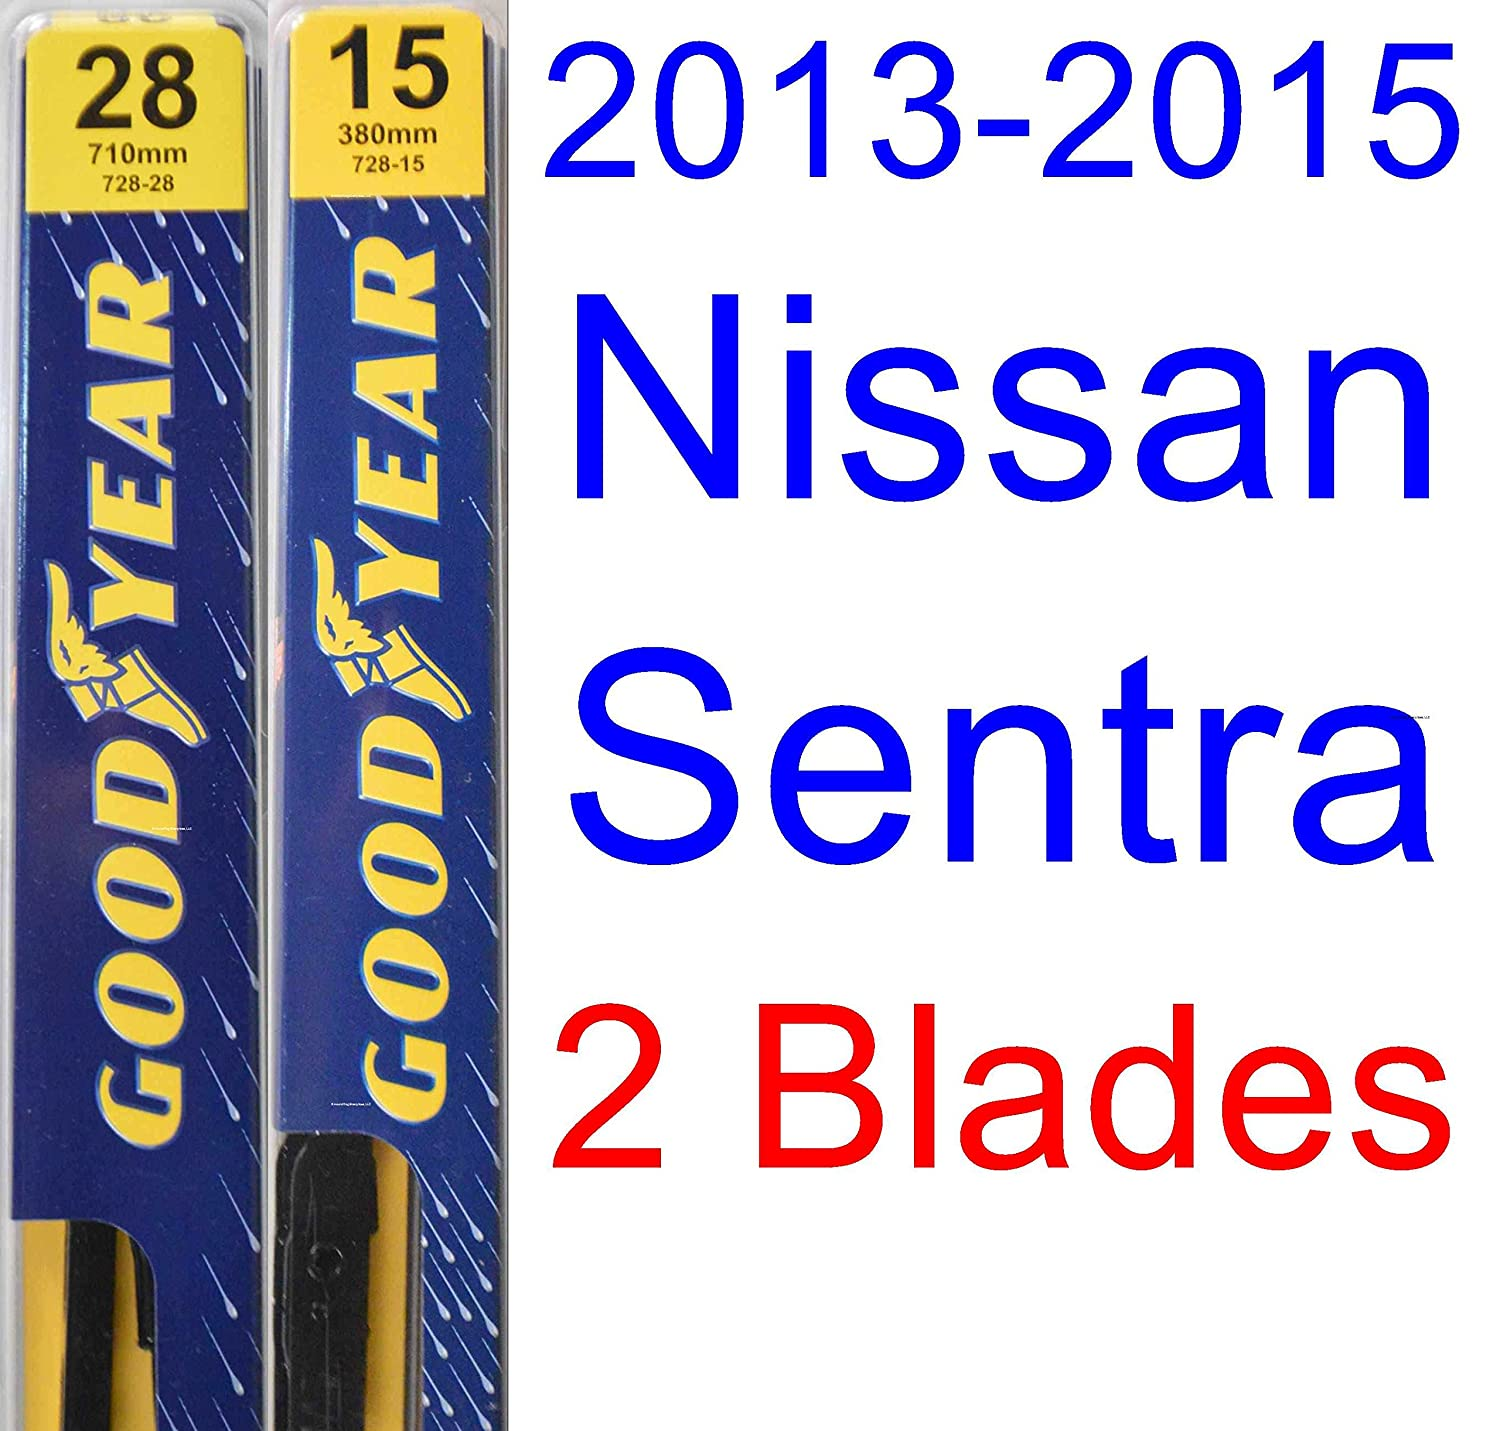 Amazon.com: 2013-2015 Nissan Sentra Replacement Wiper Blade Set/Kit (Set of 2 Blades) (Goodyear Wiper Blades-Premium) (2014): Automotive